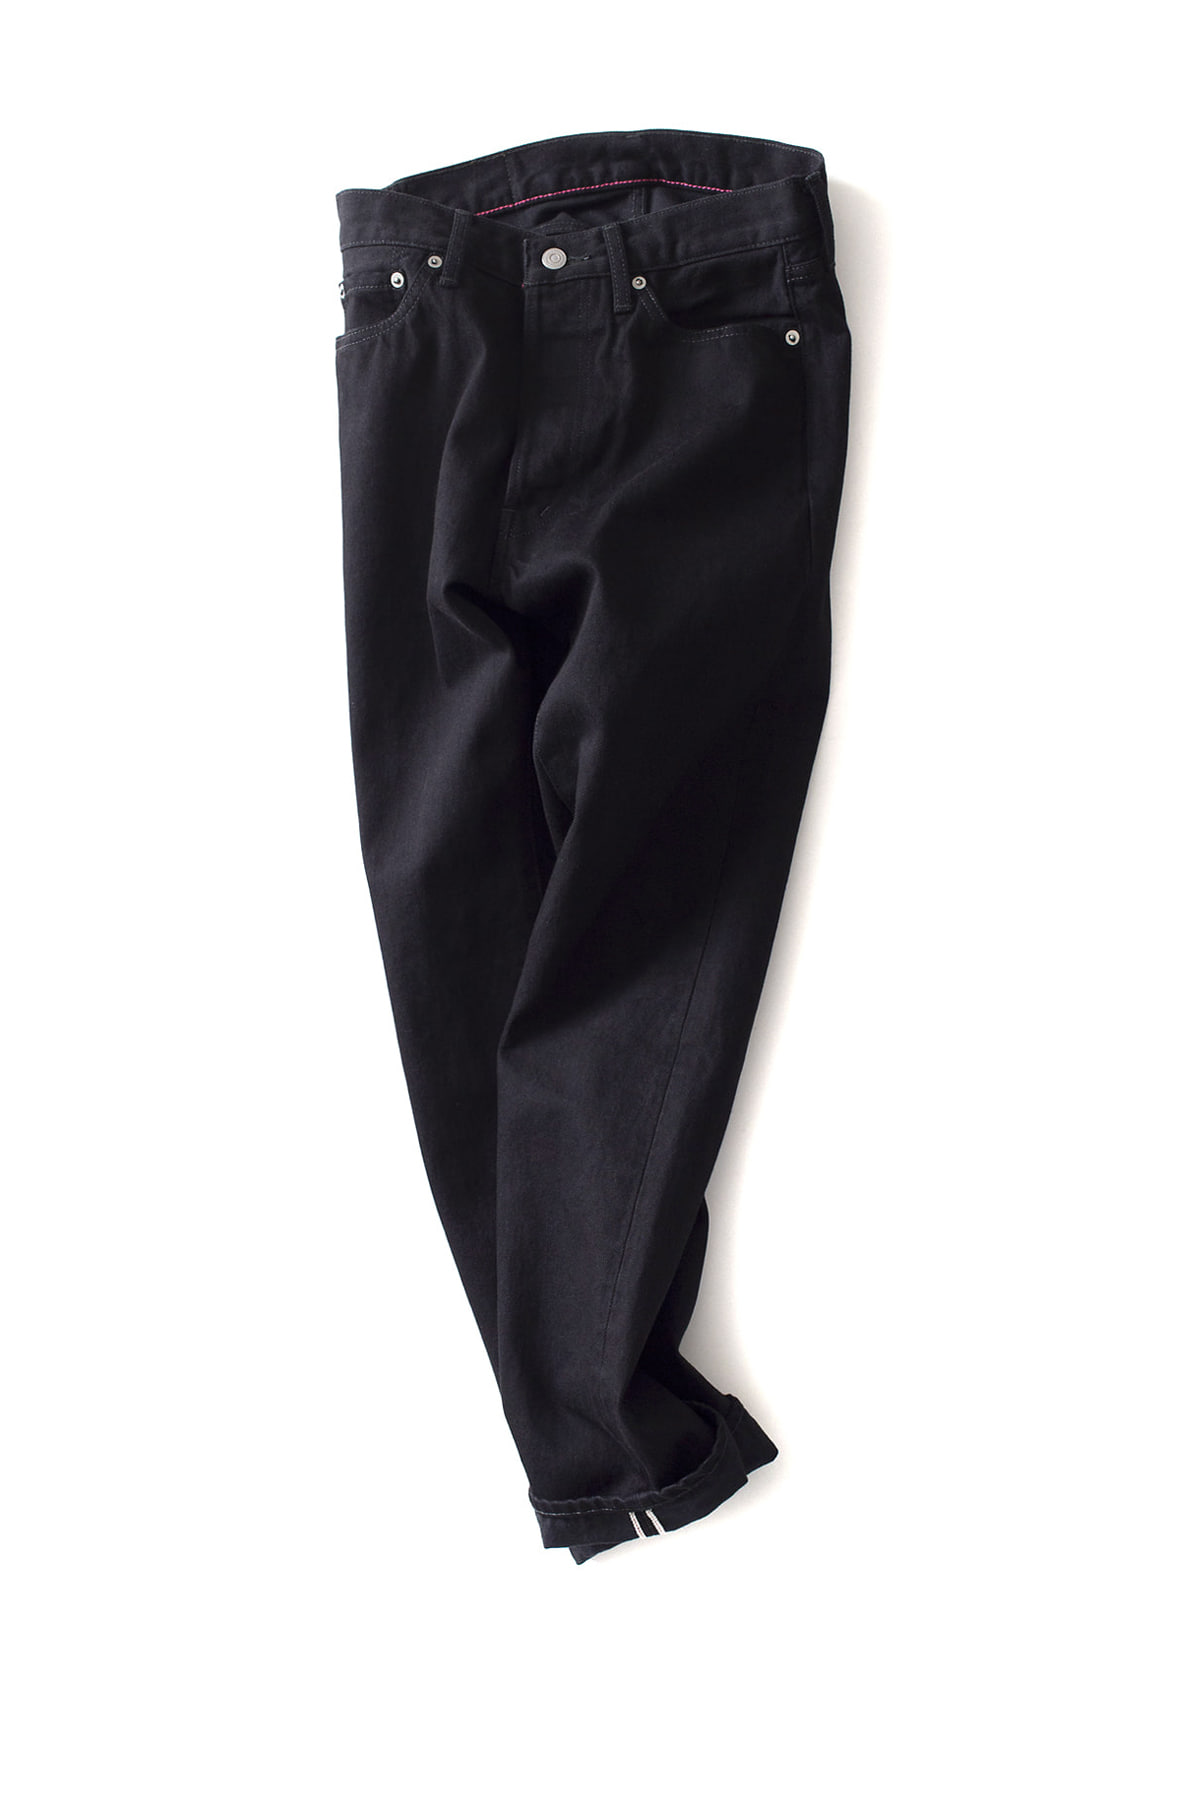 ordinary fits : New Roll Up 5P Black Denim One Wash (Black)